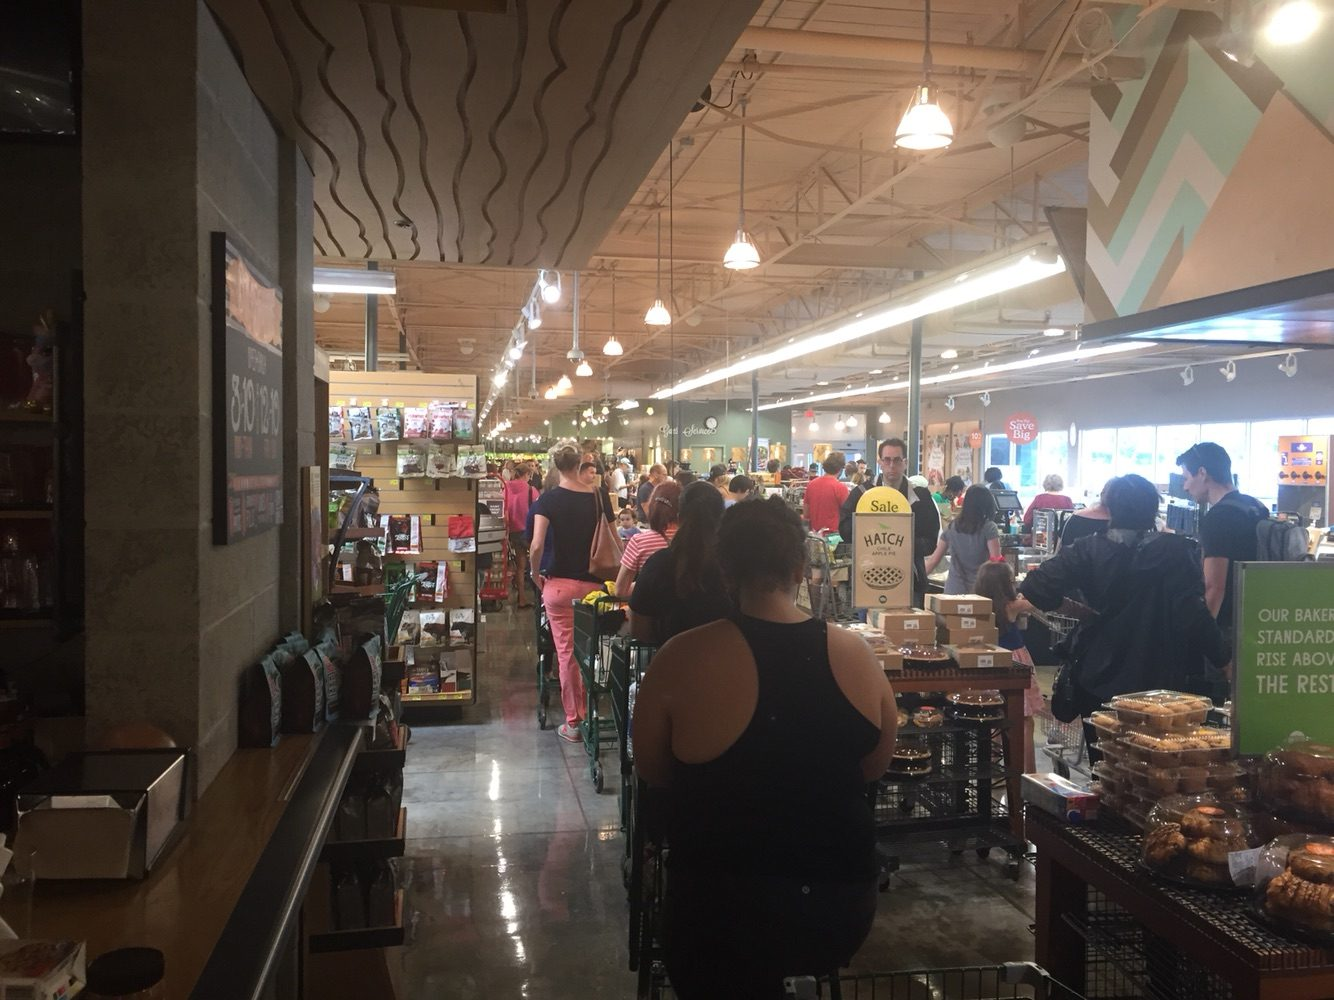 The line at Whole Foods (?) stretches out to the back of the store.